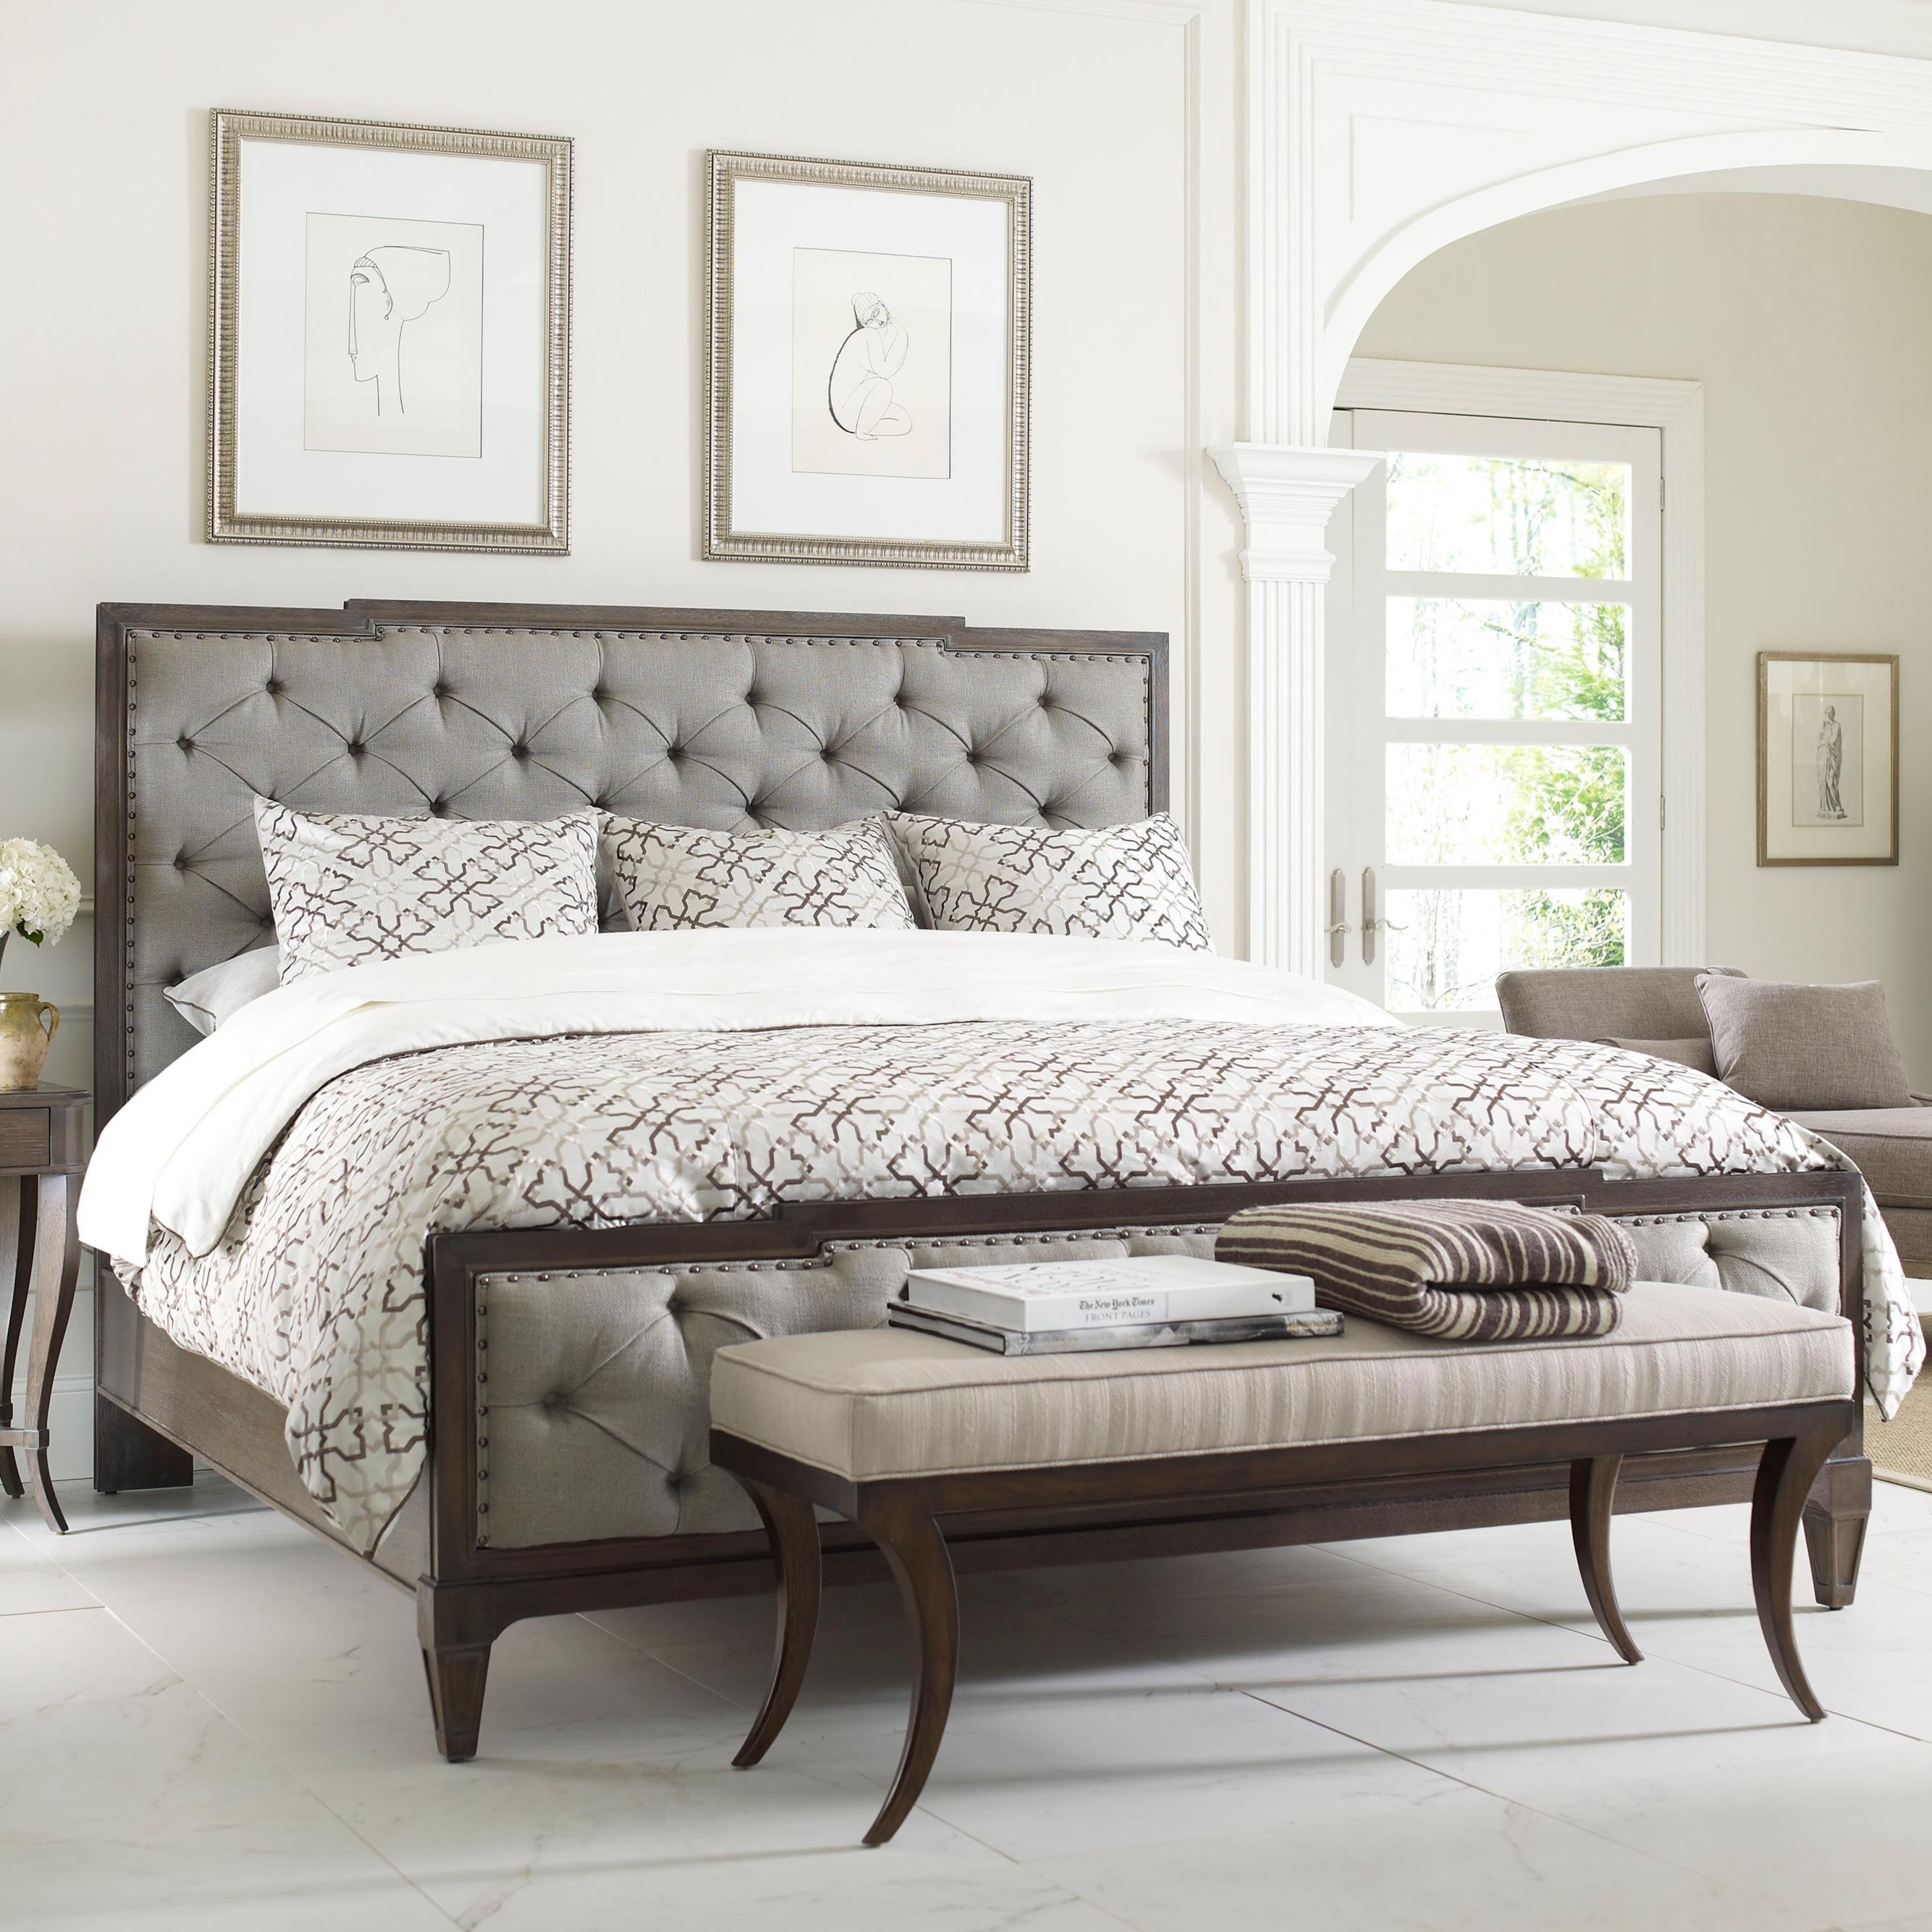 Genial Thomasville® Harlowe U0026 Finch Mirabeau Queen Sized Bed With Upholstered  Headboard And Footboard | Louis Mohana Furniture | Upholstered Bed